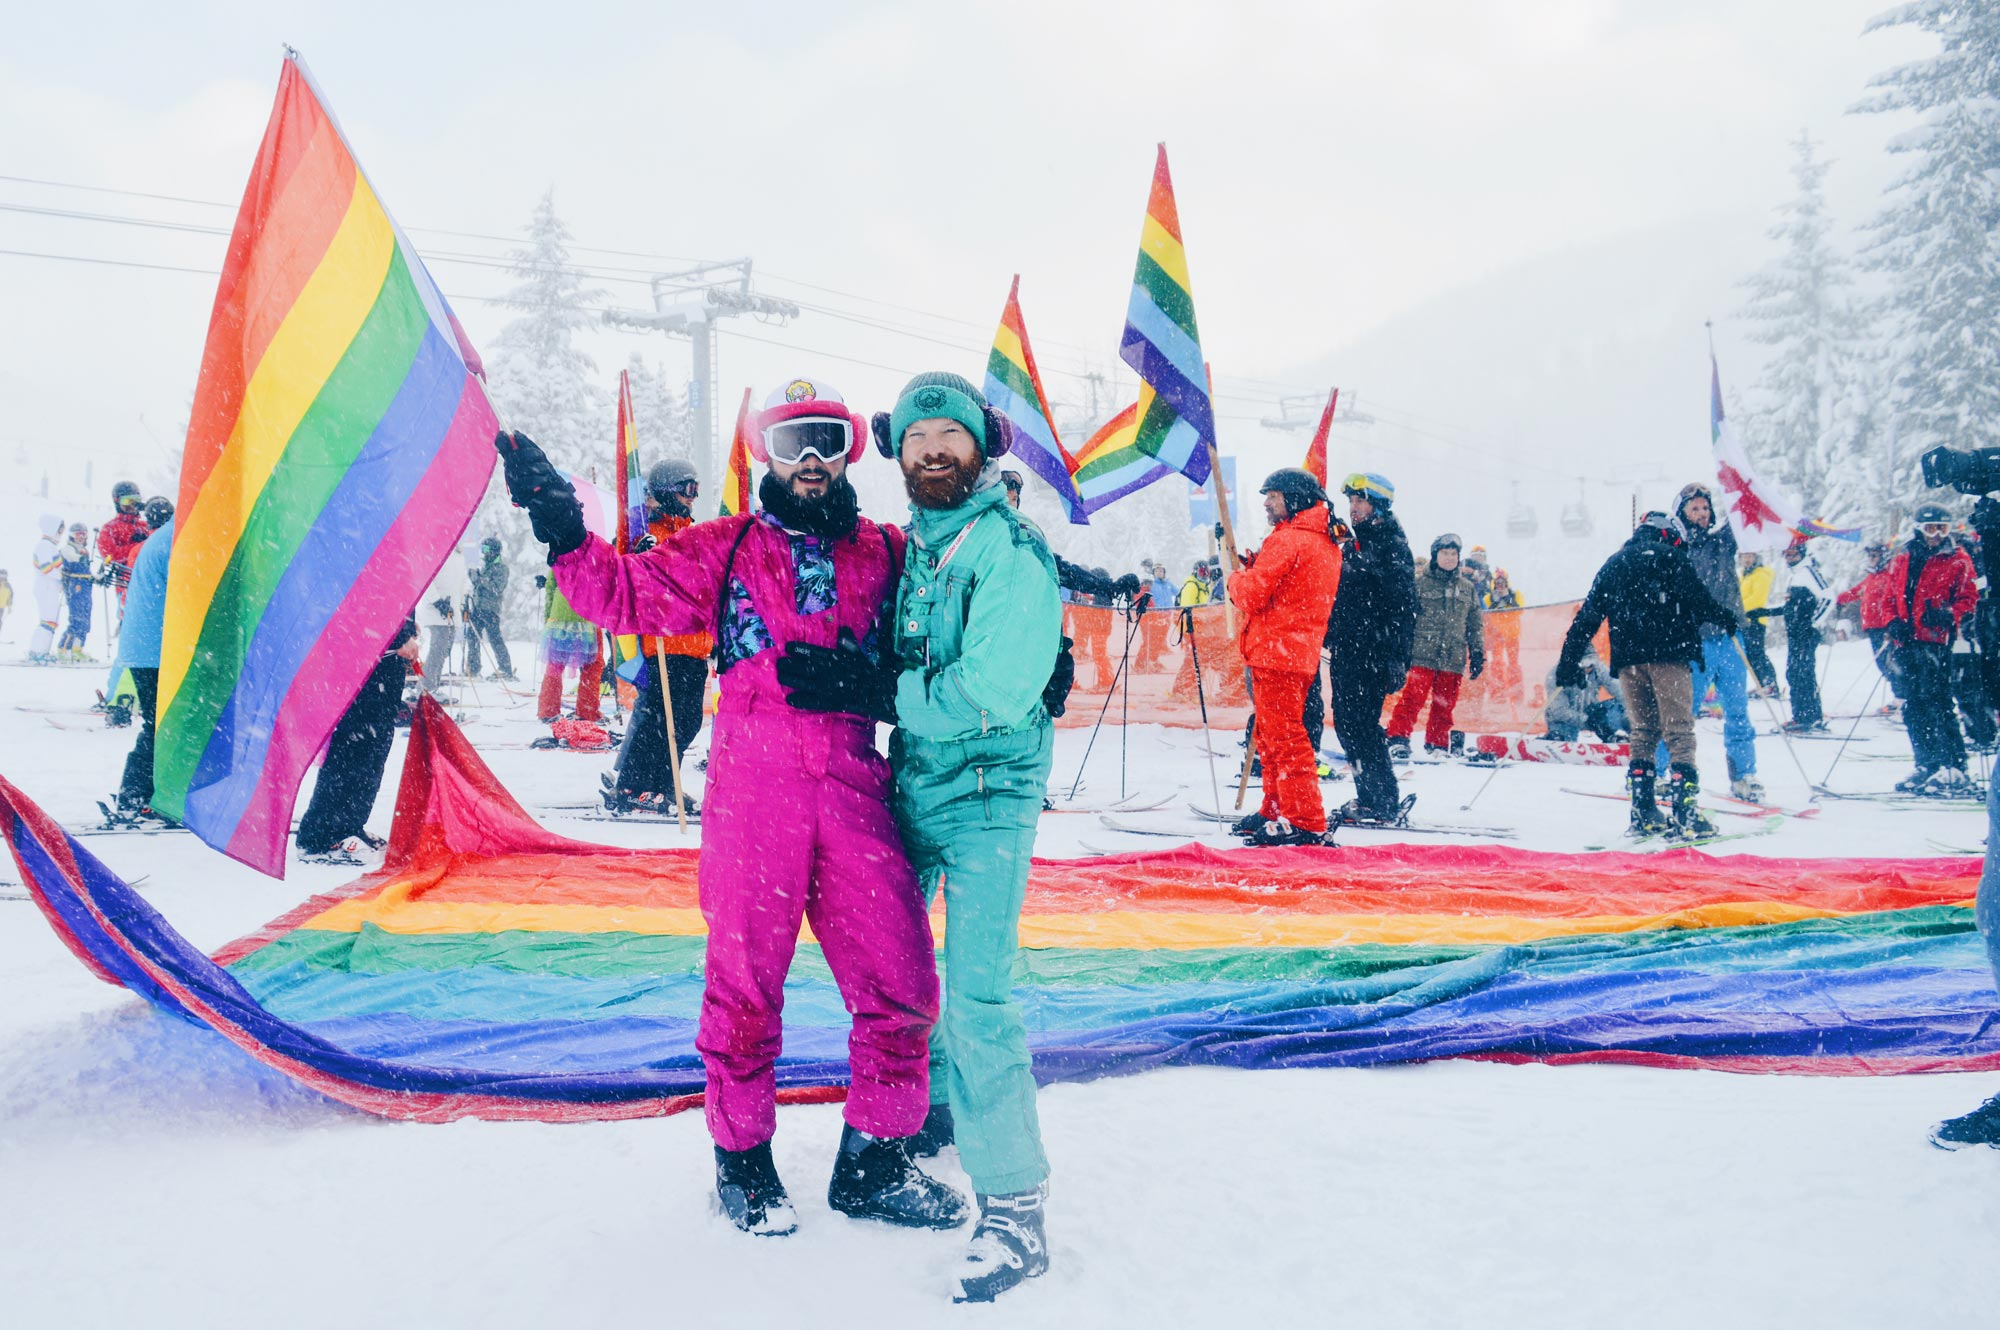 Top 13 Beste Schwule Skiwochen Gay Travel blogger Coupleofmen.com skiing and snowboarding | Top 13 Best Gay Ski Weeks Worldwide © CoupleofMen.com